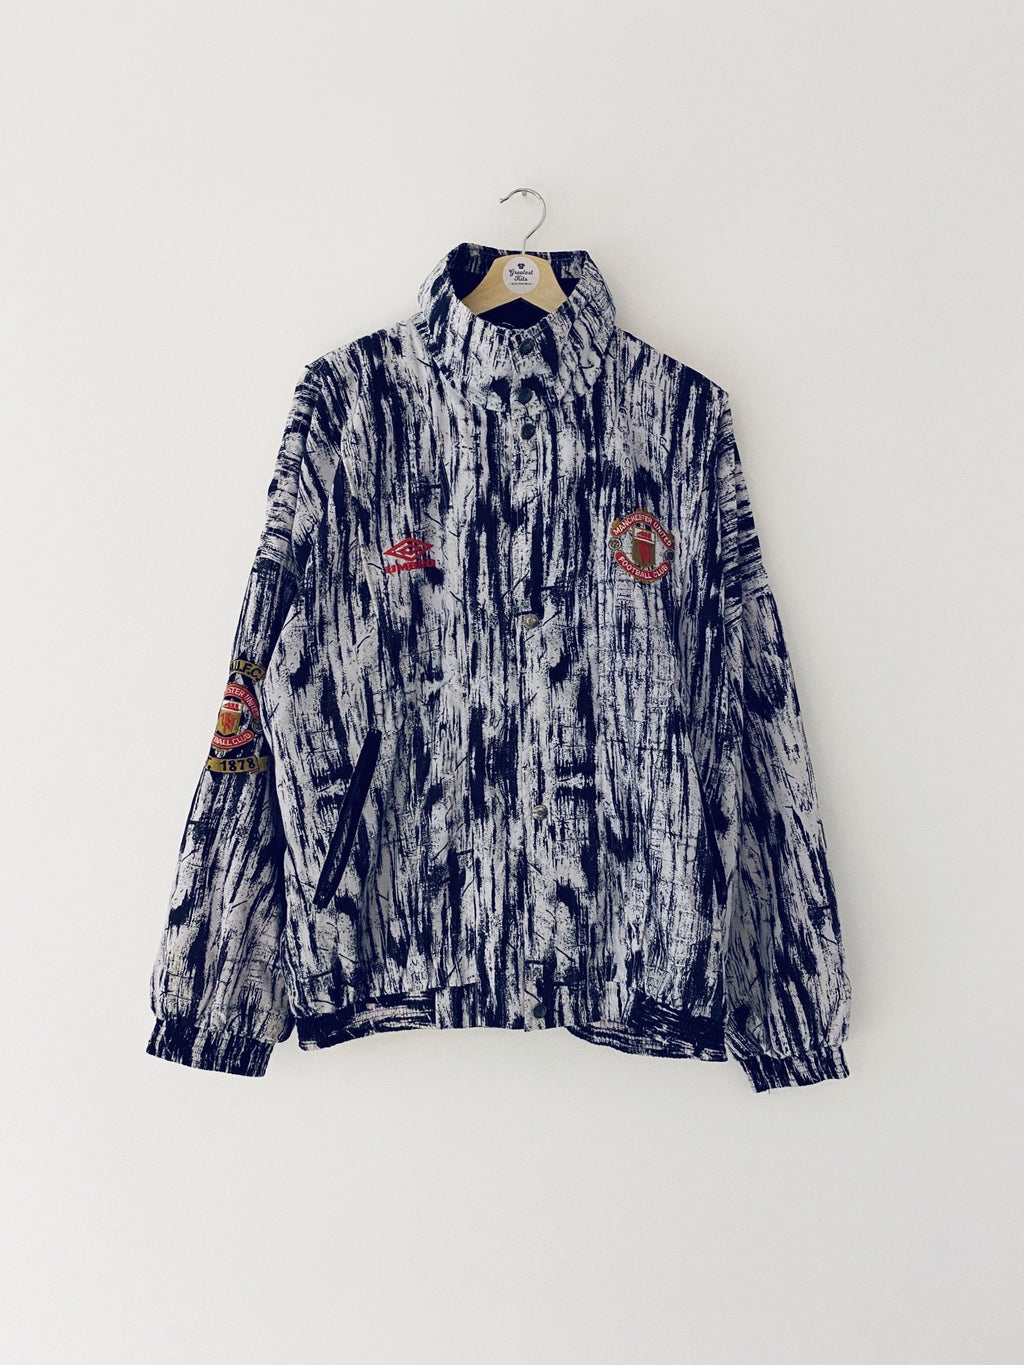 1992/93 Manchester United Presentation Jacket (L) 9.5/10